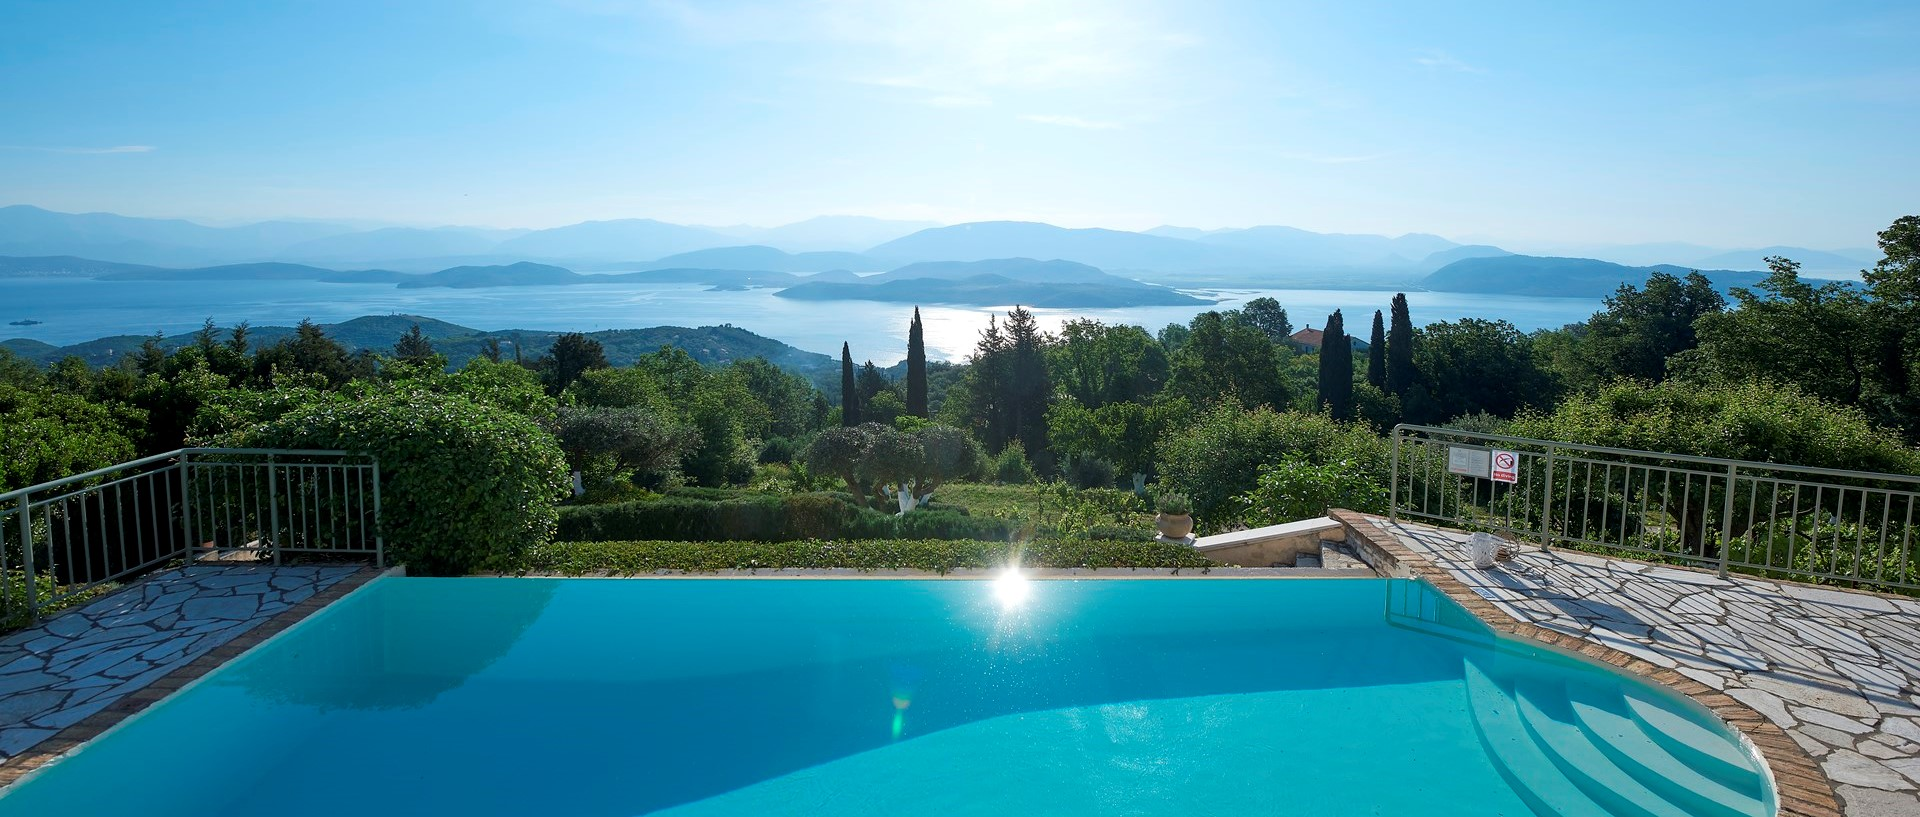 villa-kokkini-corfu-pool-view